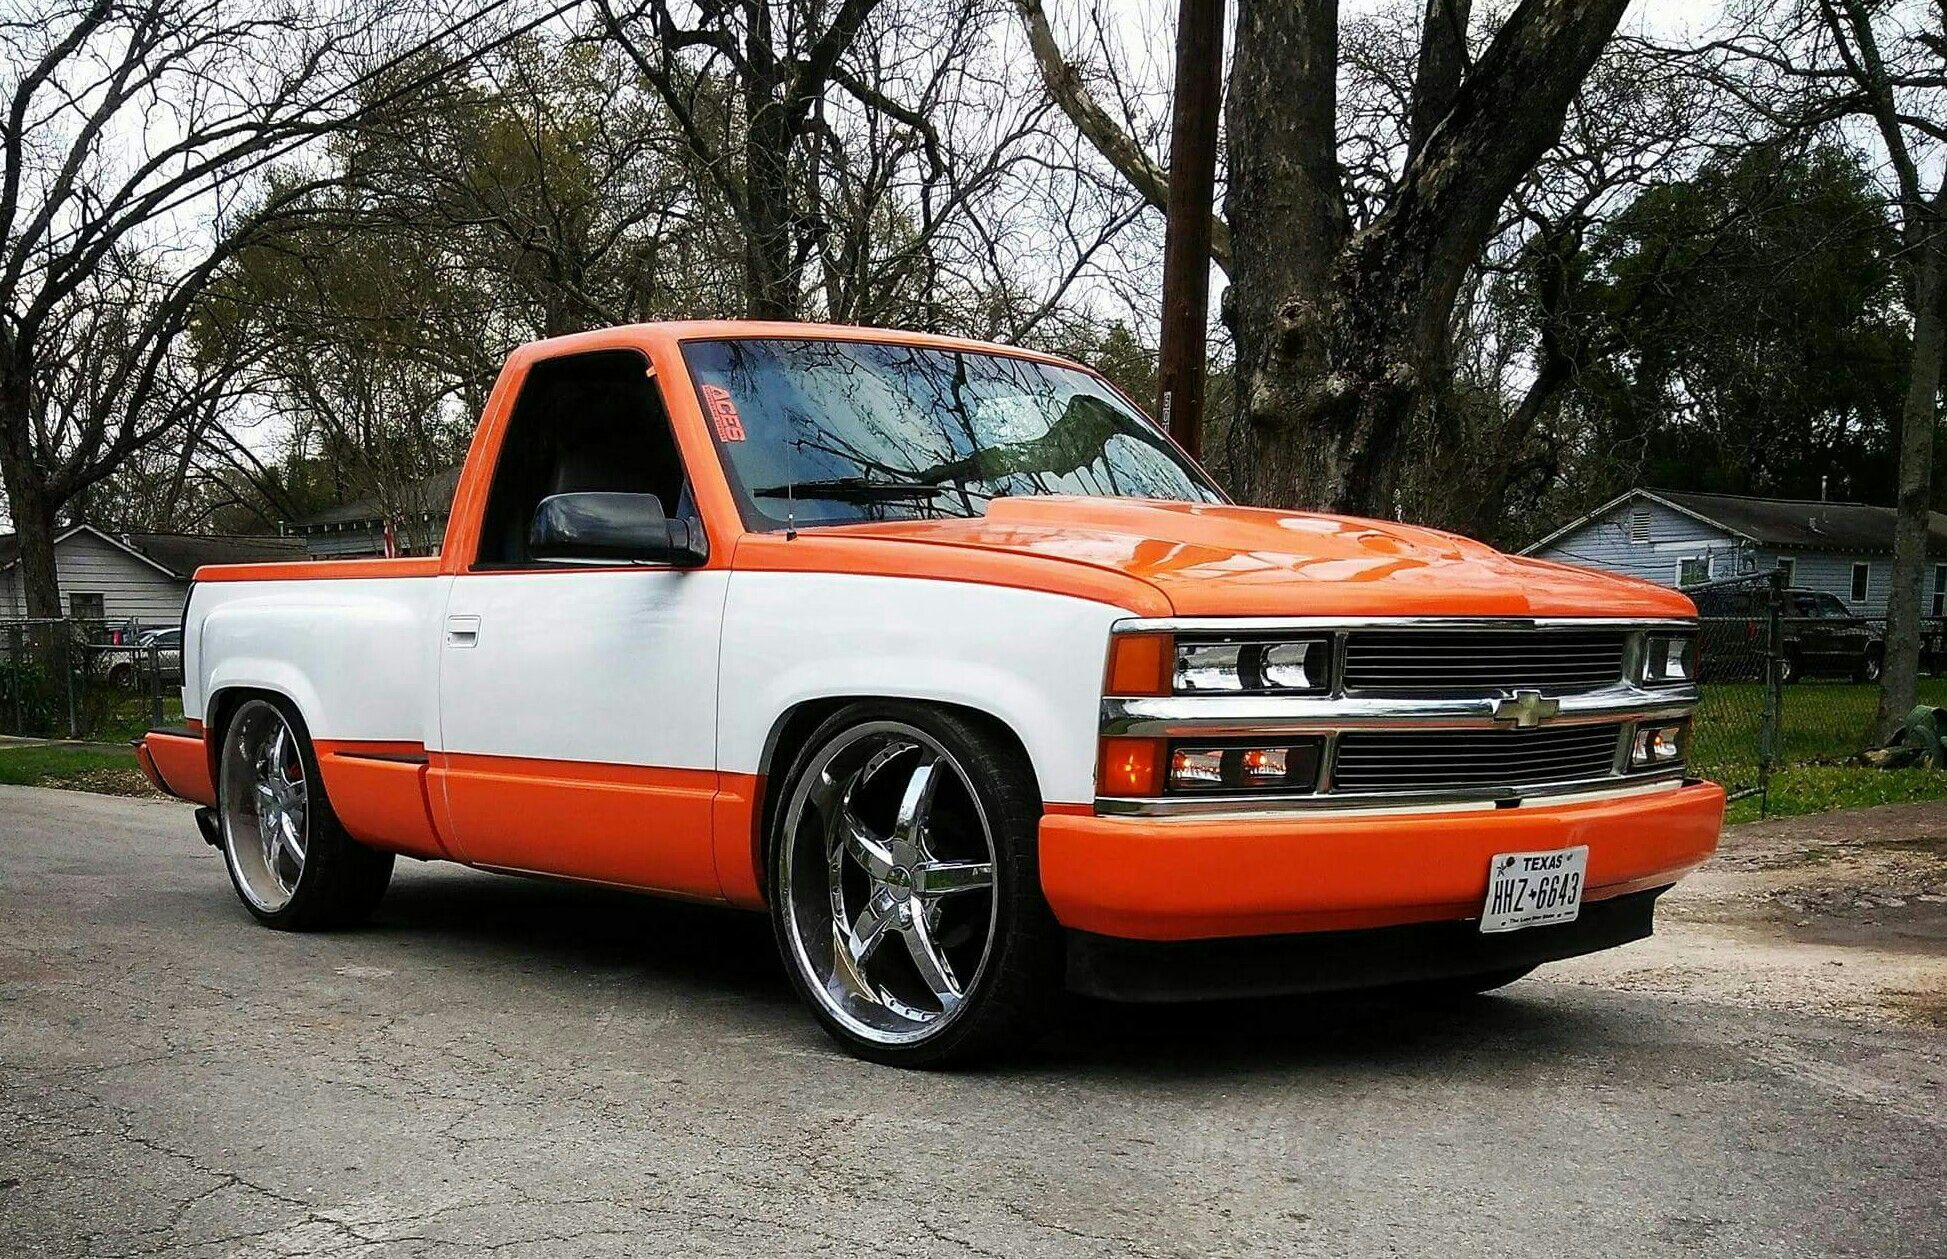 Orange and white obs chevy truck